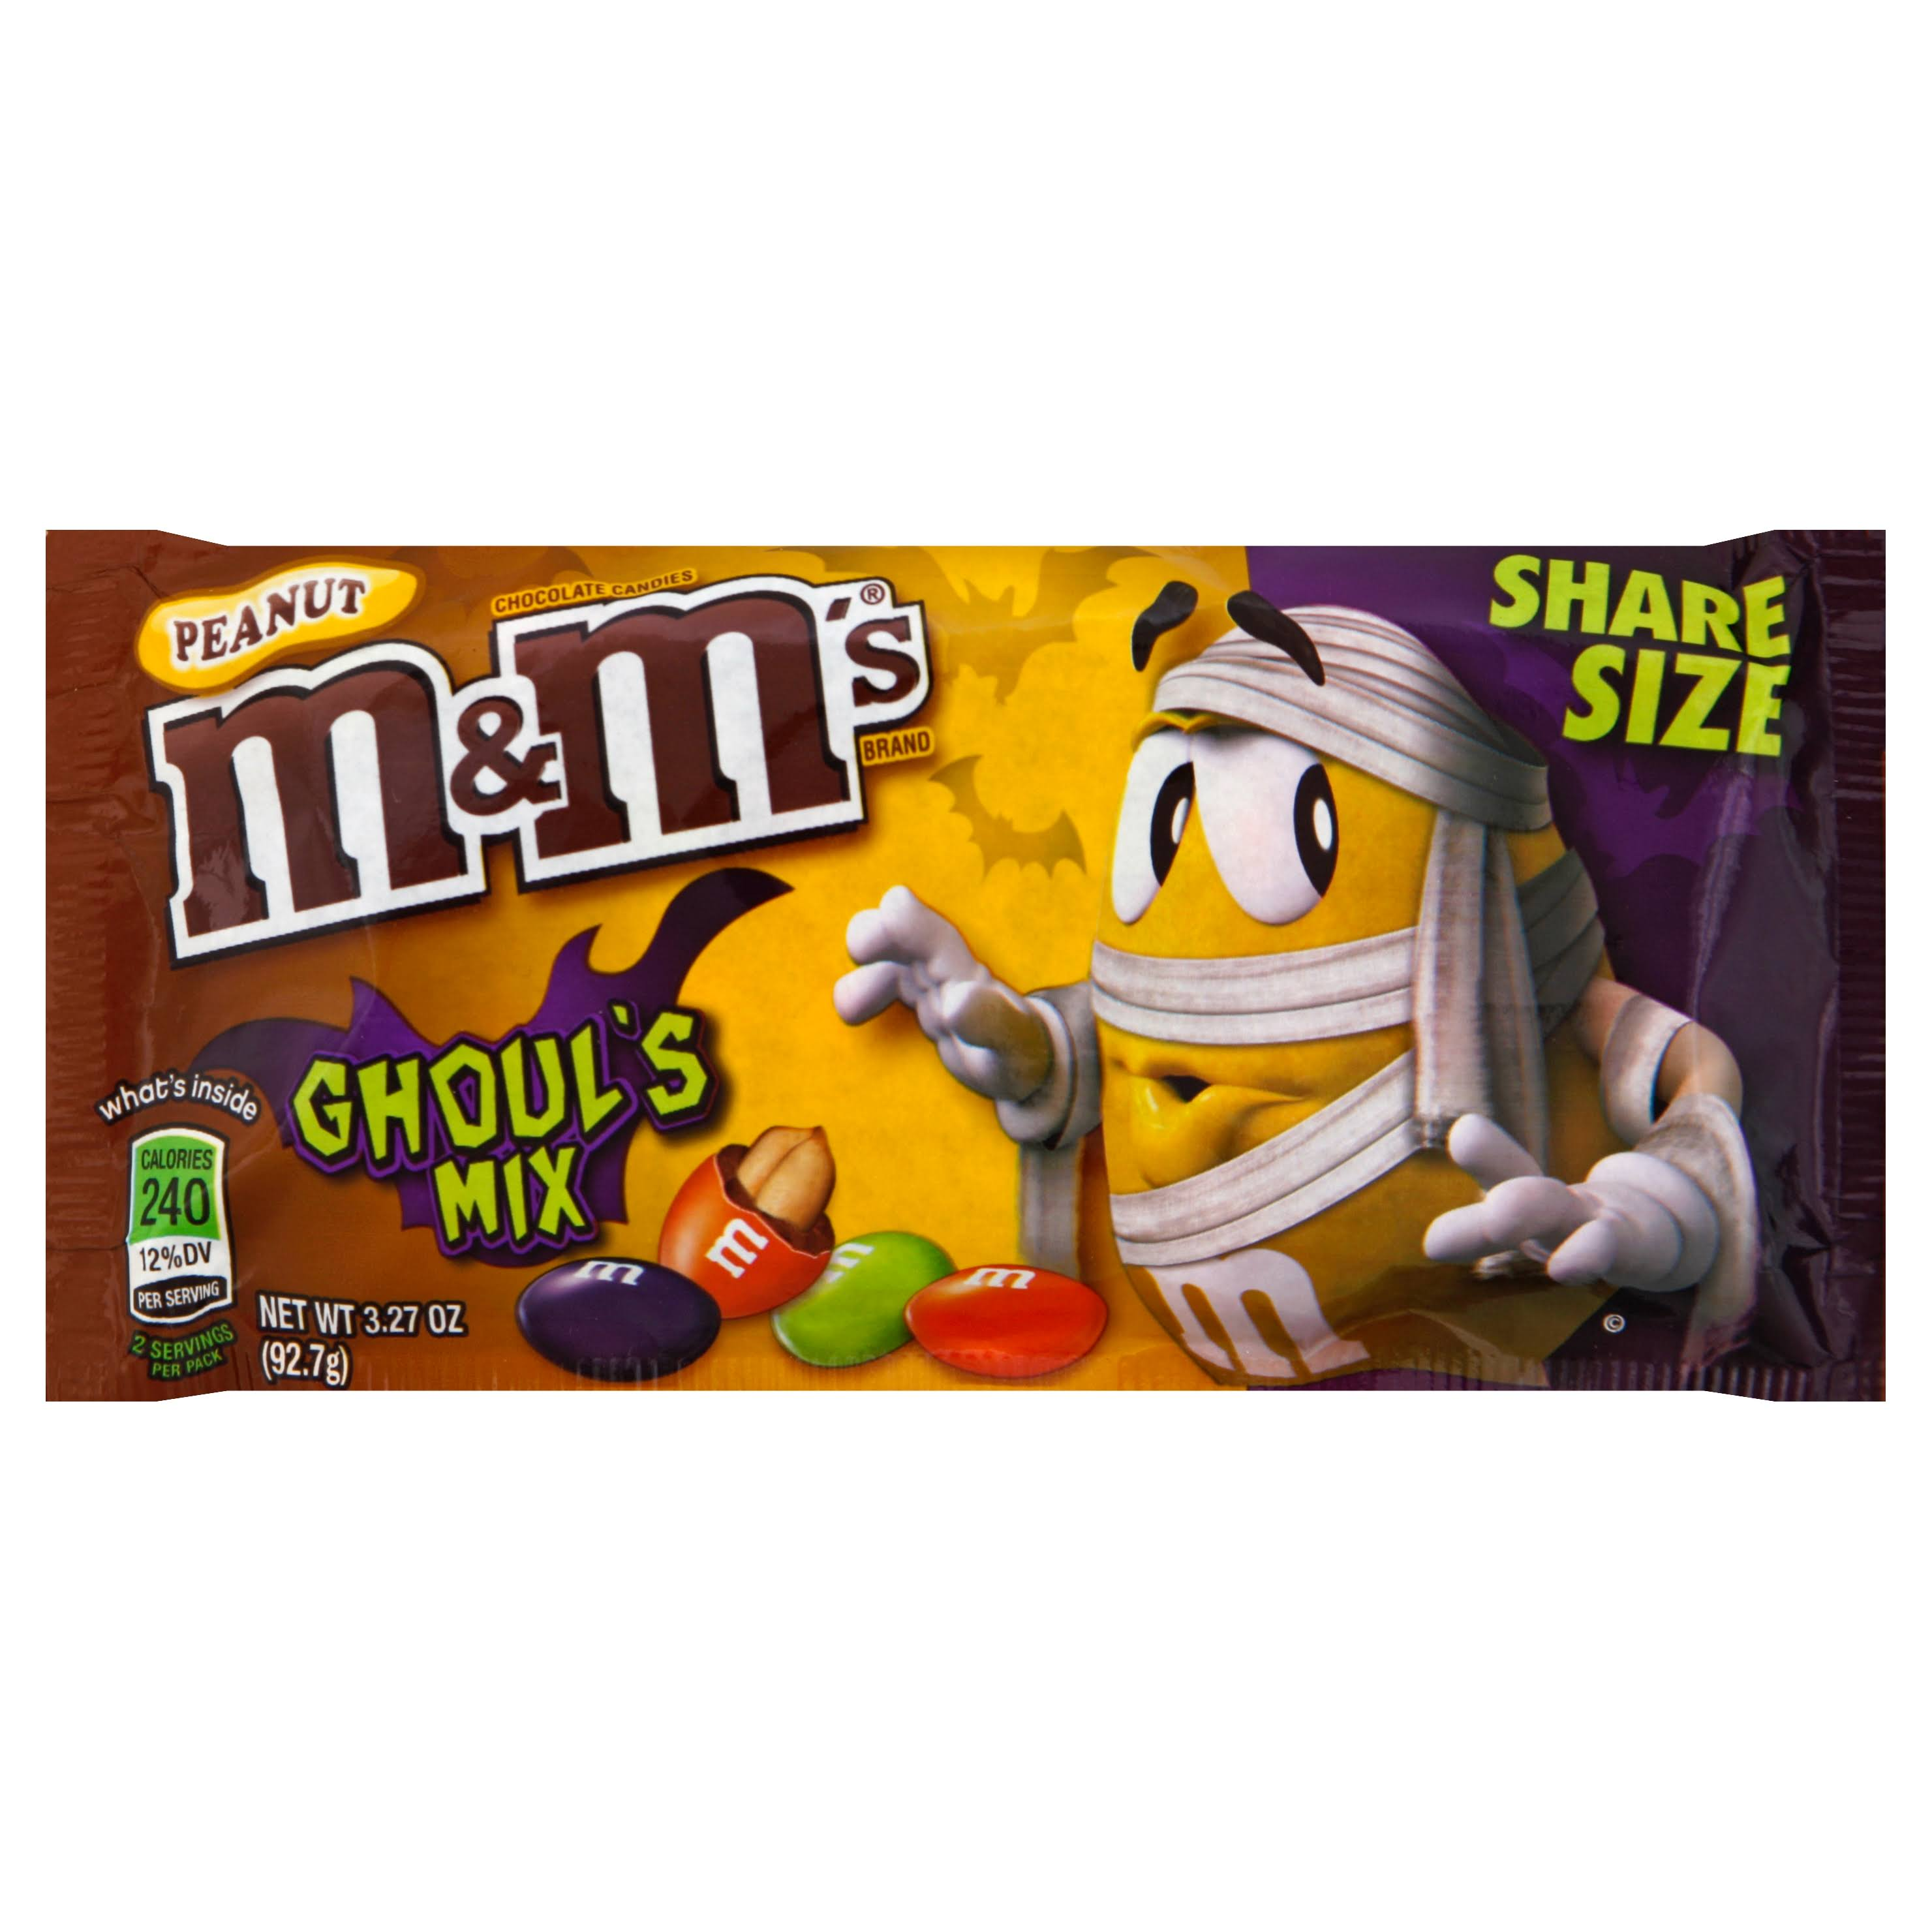 M & M Chocolate Candies, Peanut, Ghoul's Mix, Share Size - 3.27 oz